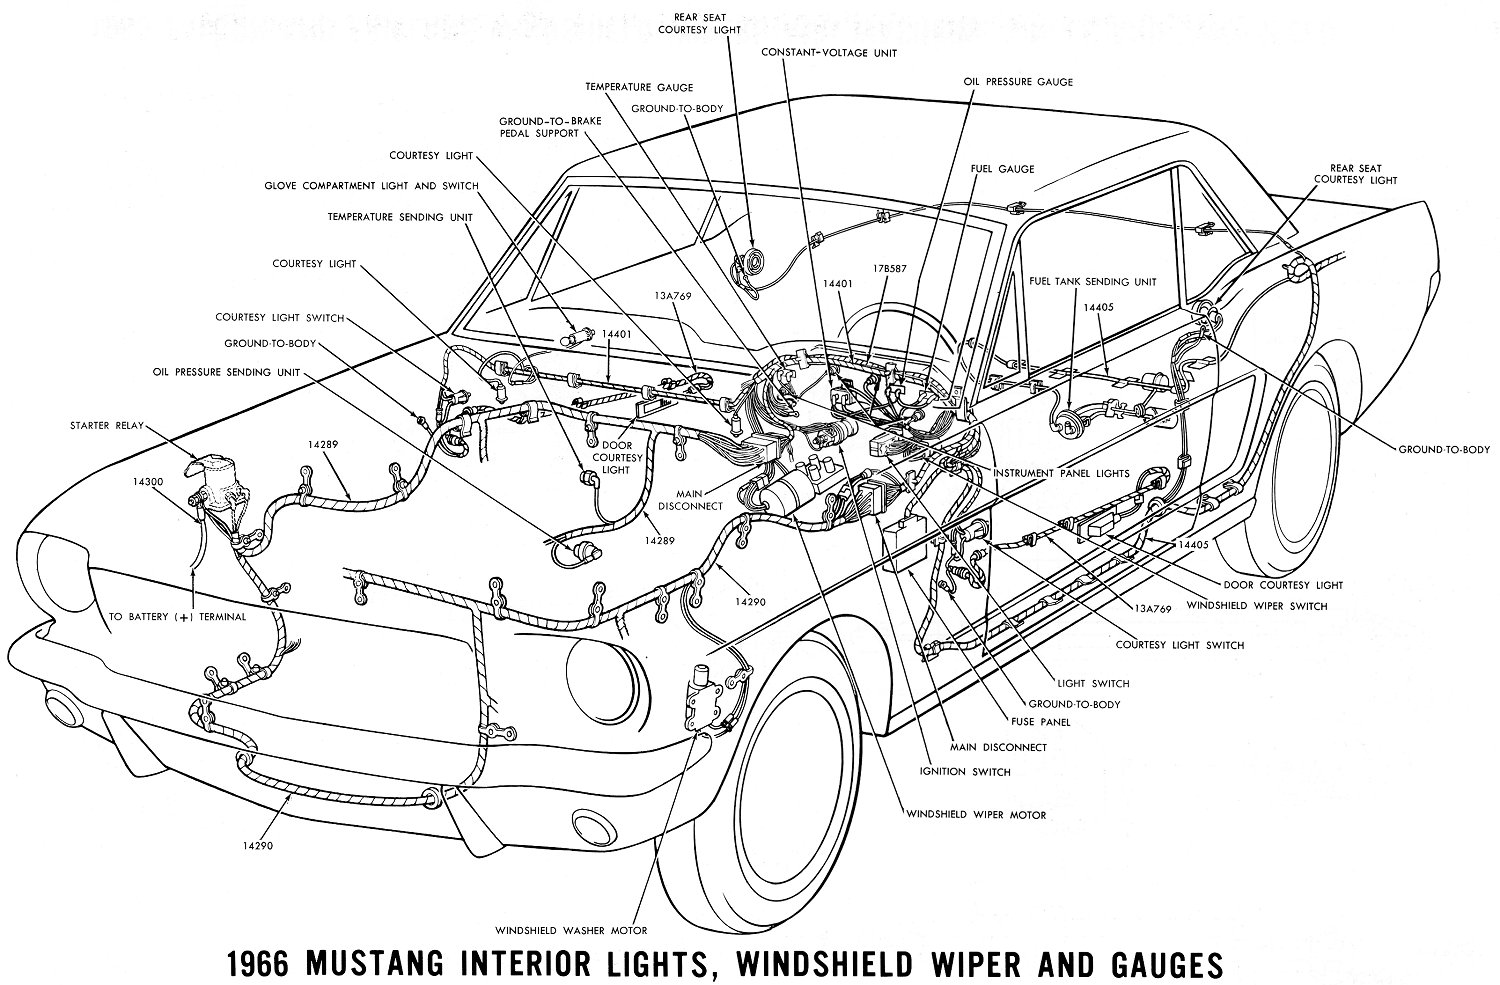 66inter 1966 mustang wiring diagrams average joe restoration 1966 mustang alternator wiring diagram at mifinder.co